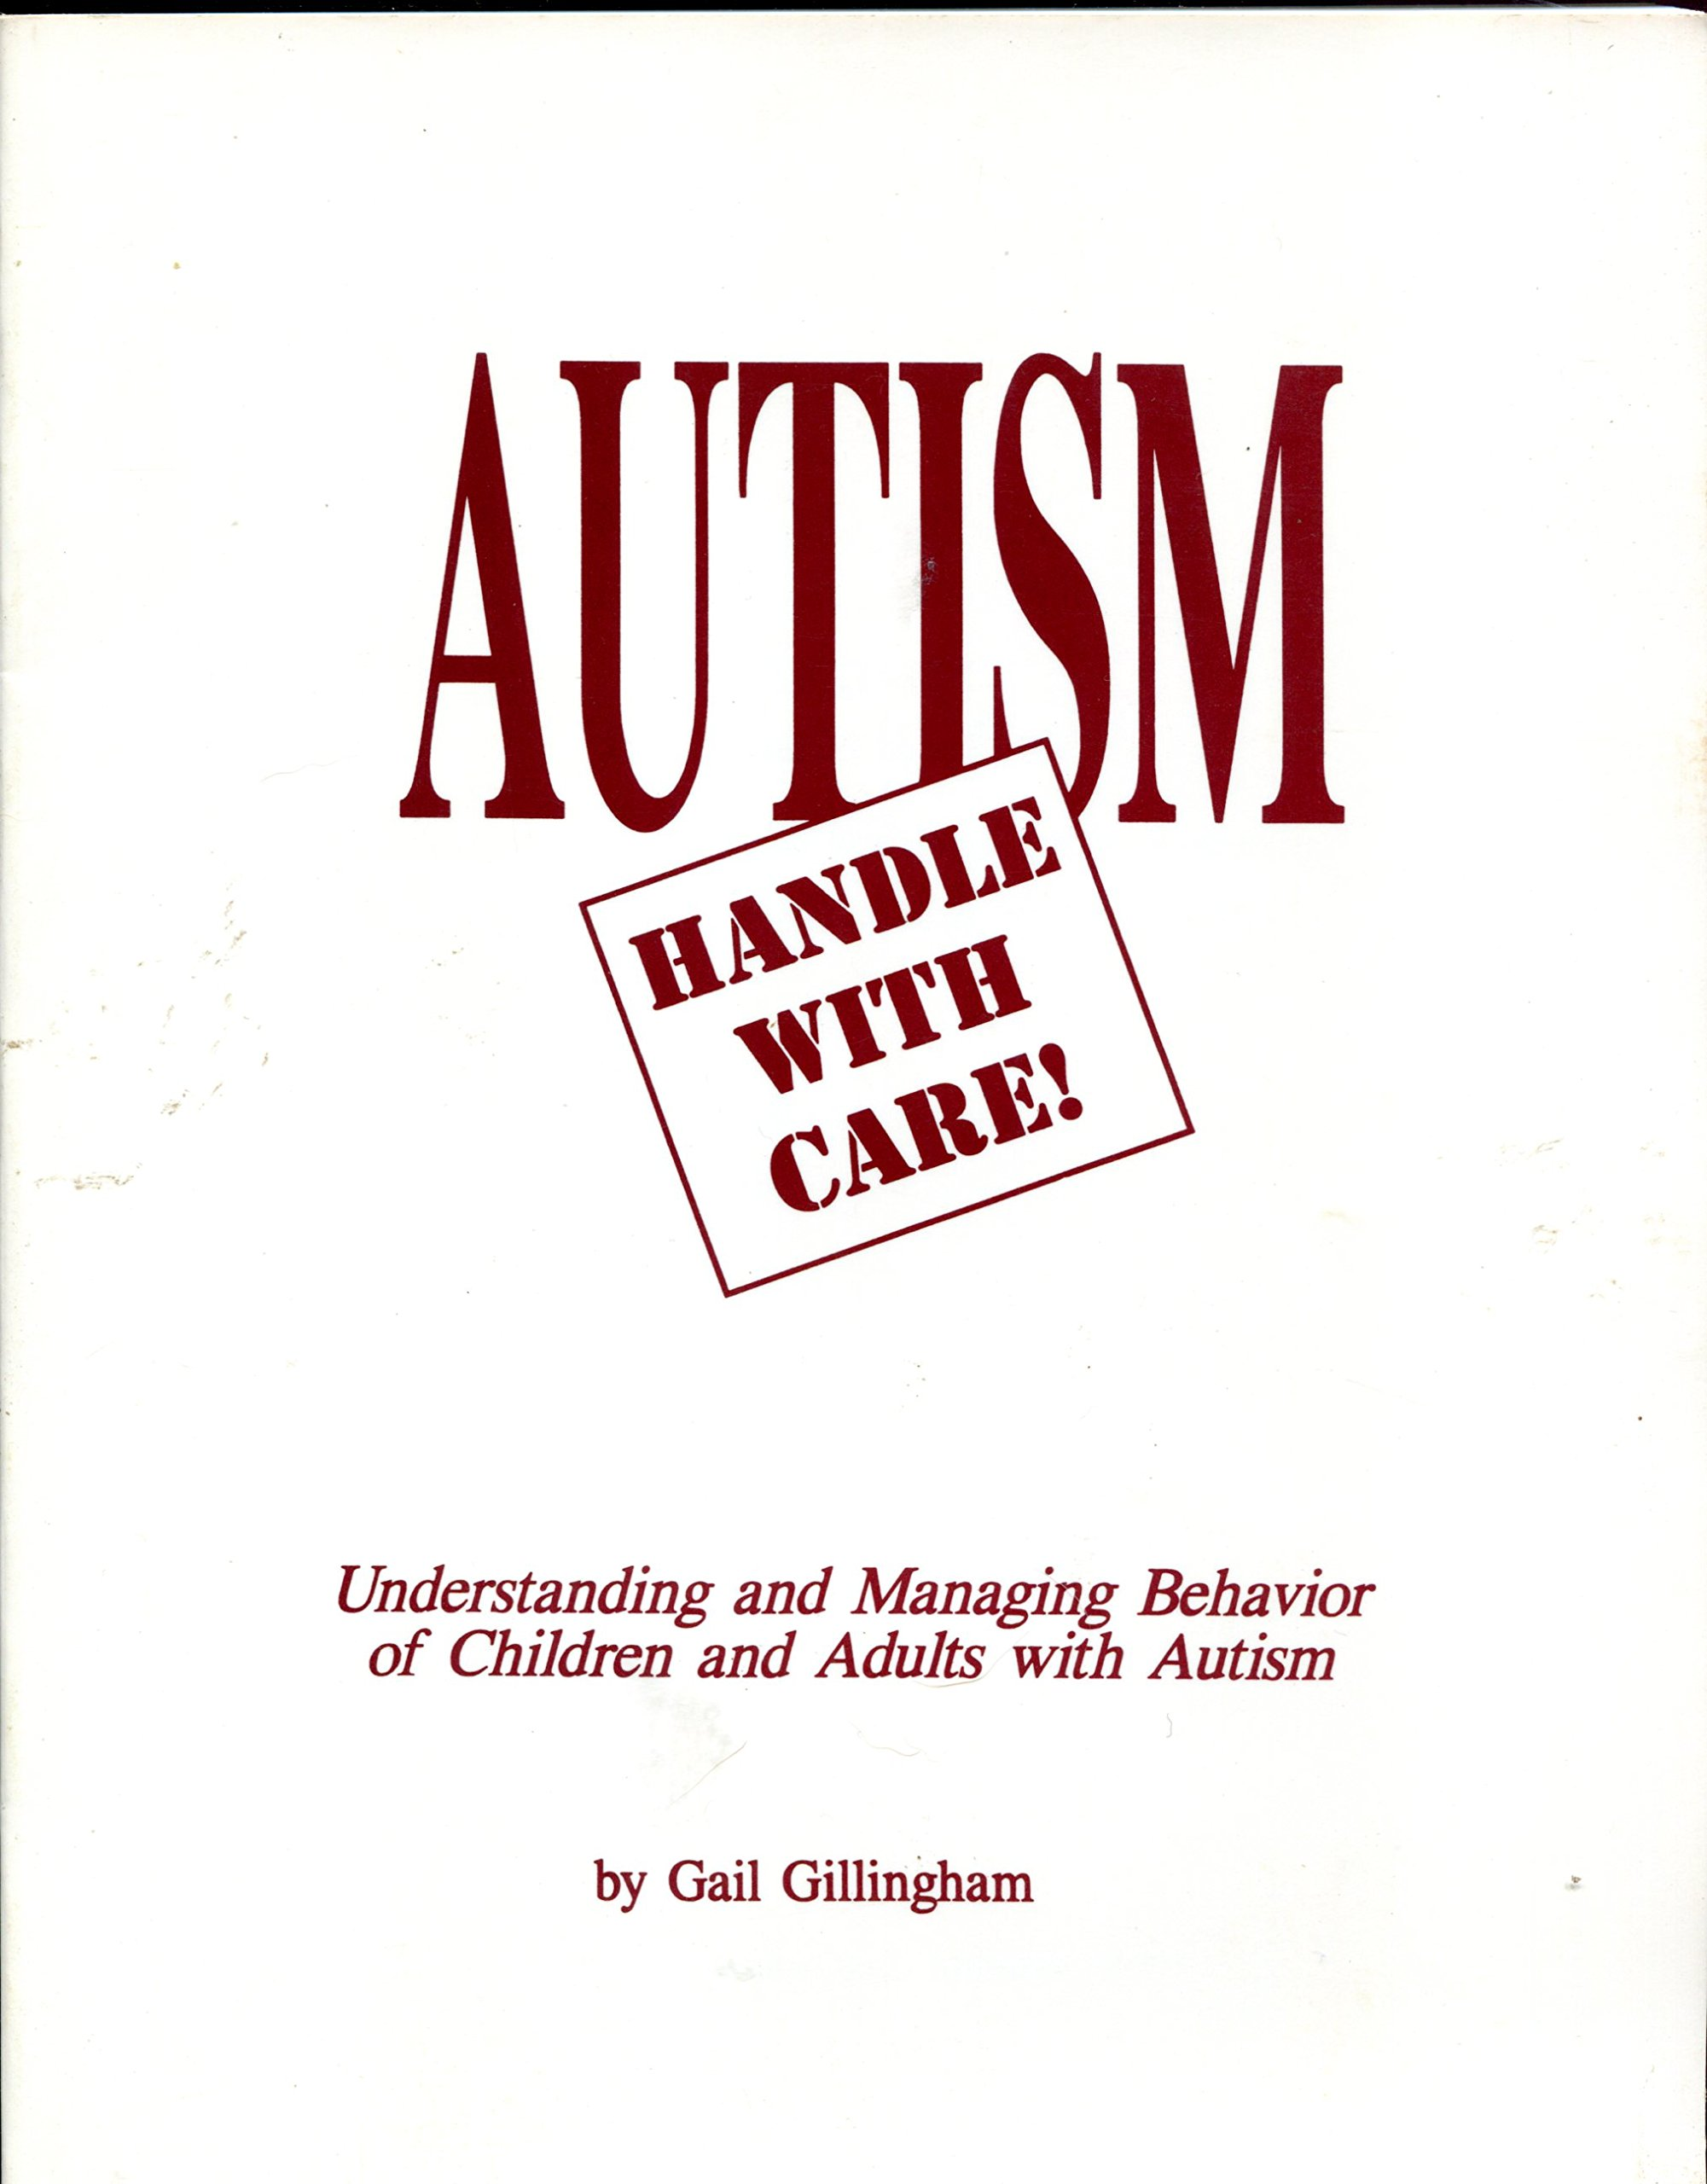 How to deal with autistic behaviors in adults — photo 1